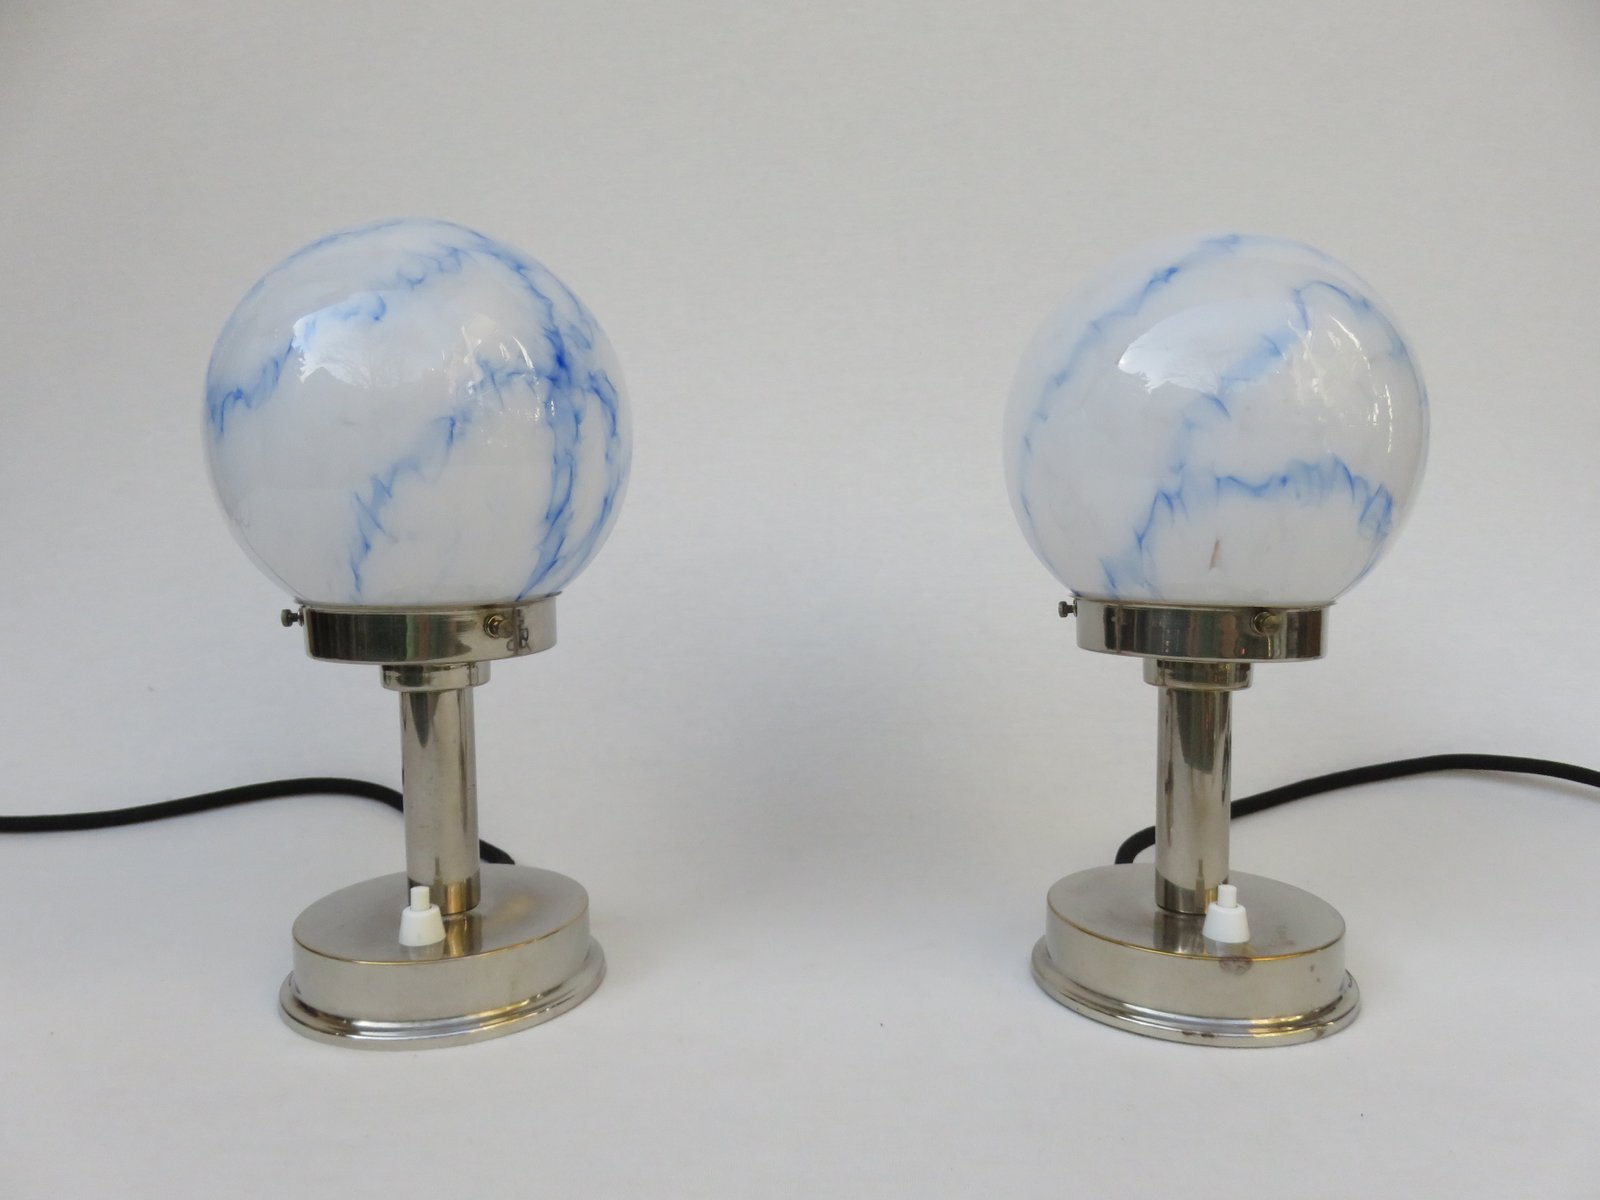 Lovely Vintage Small Art Deco Table Lamps From FM, Set Of 2